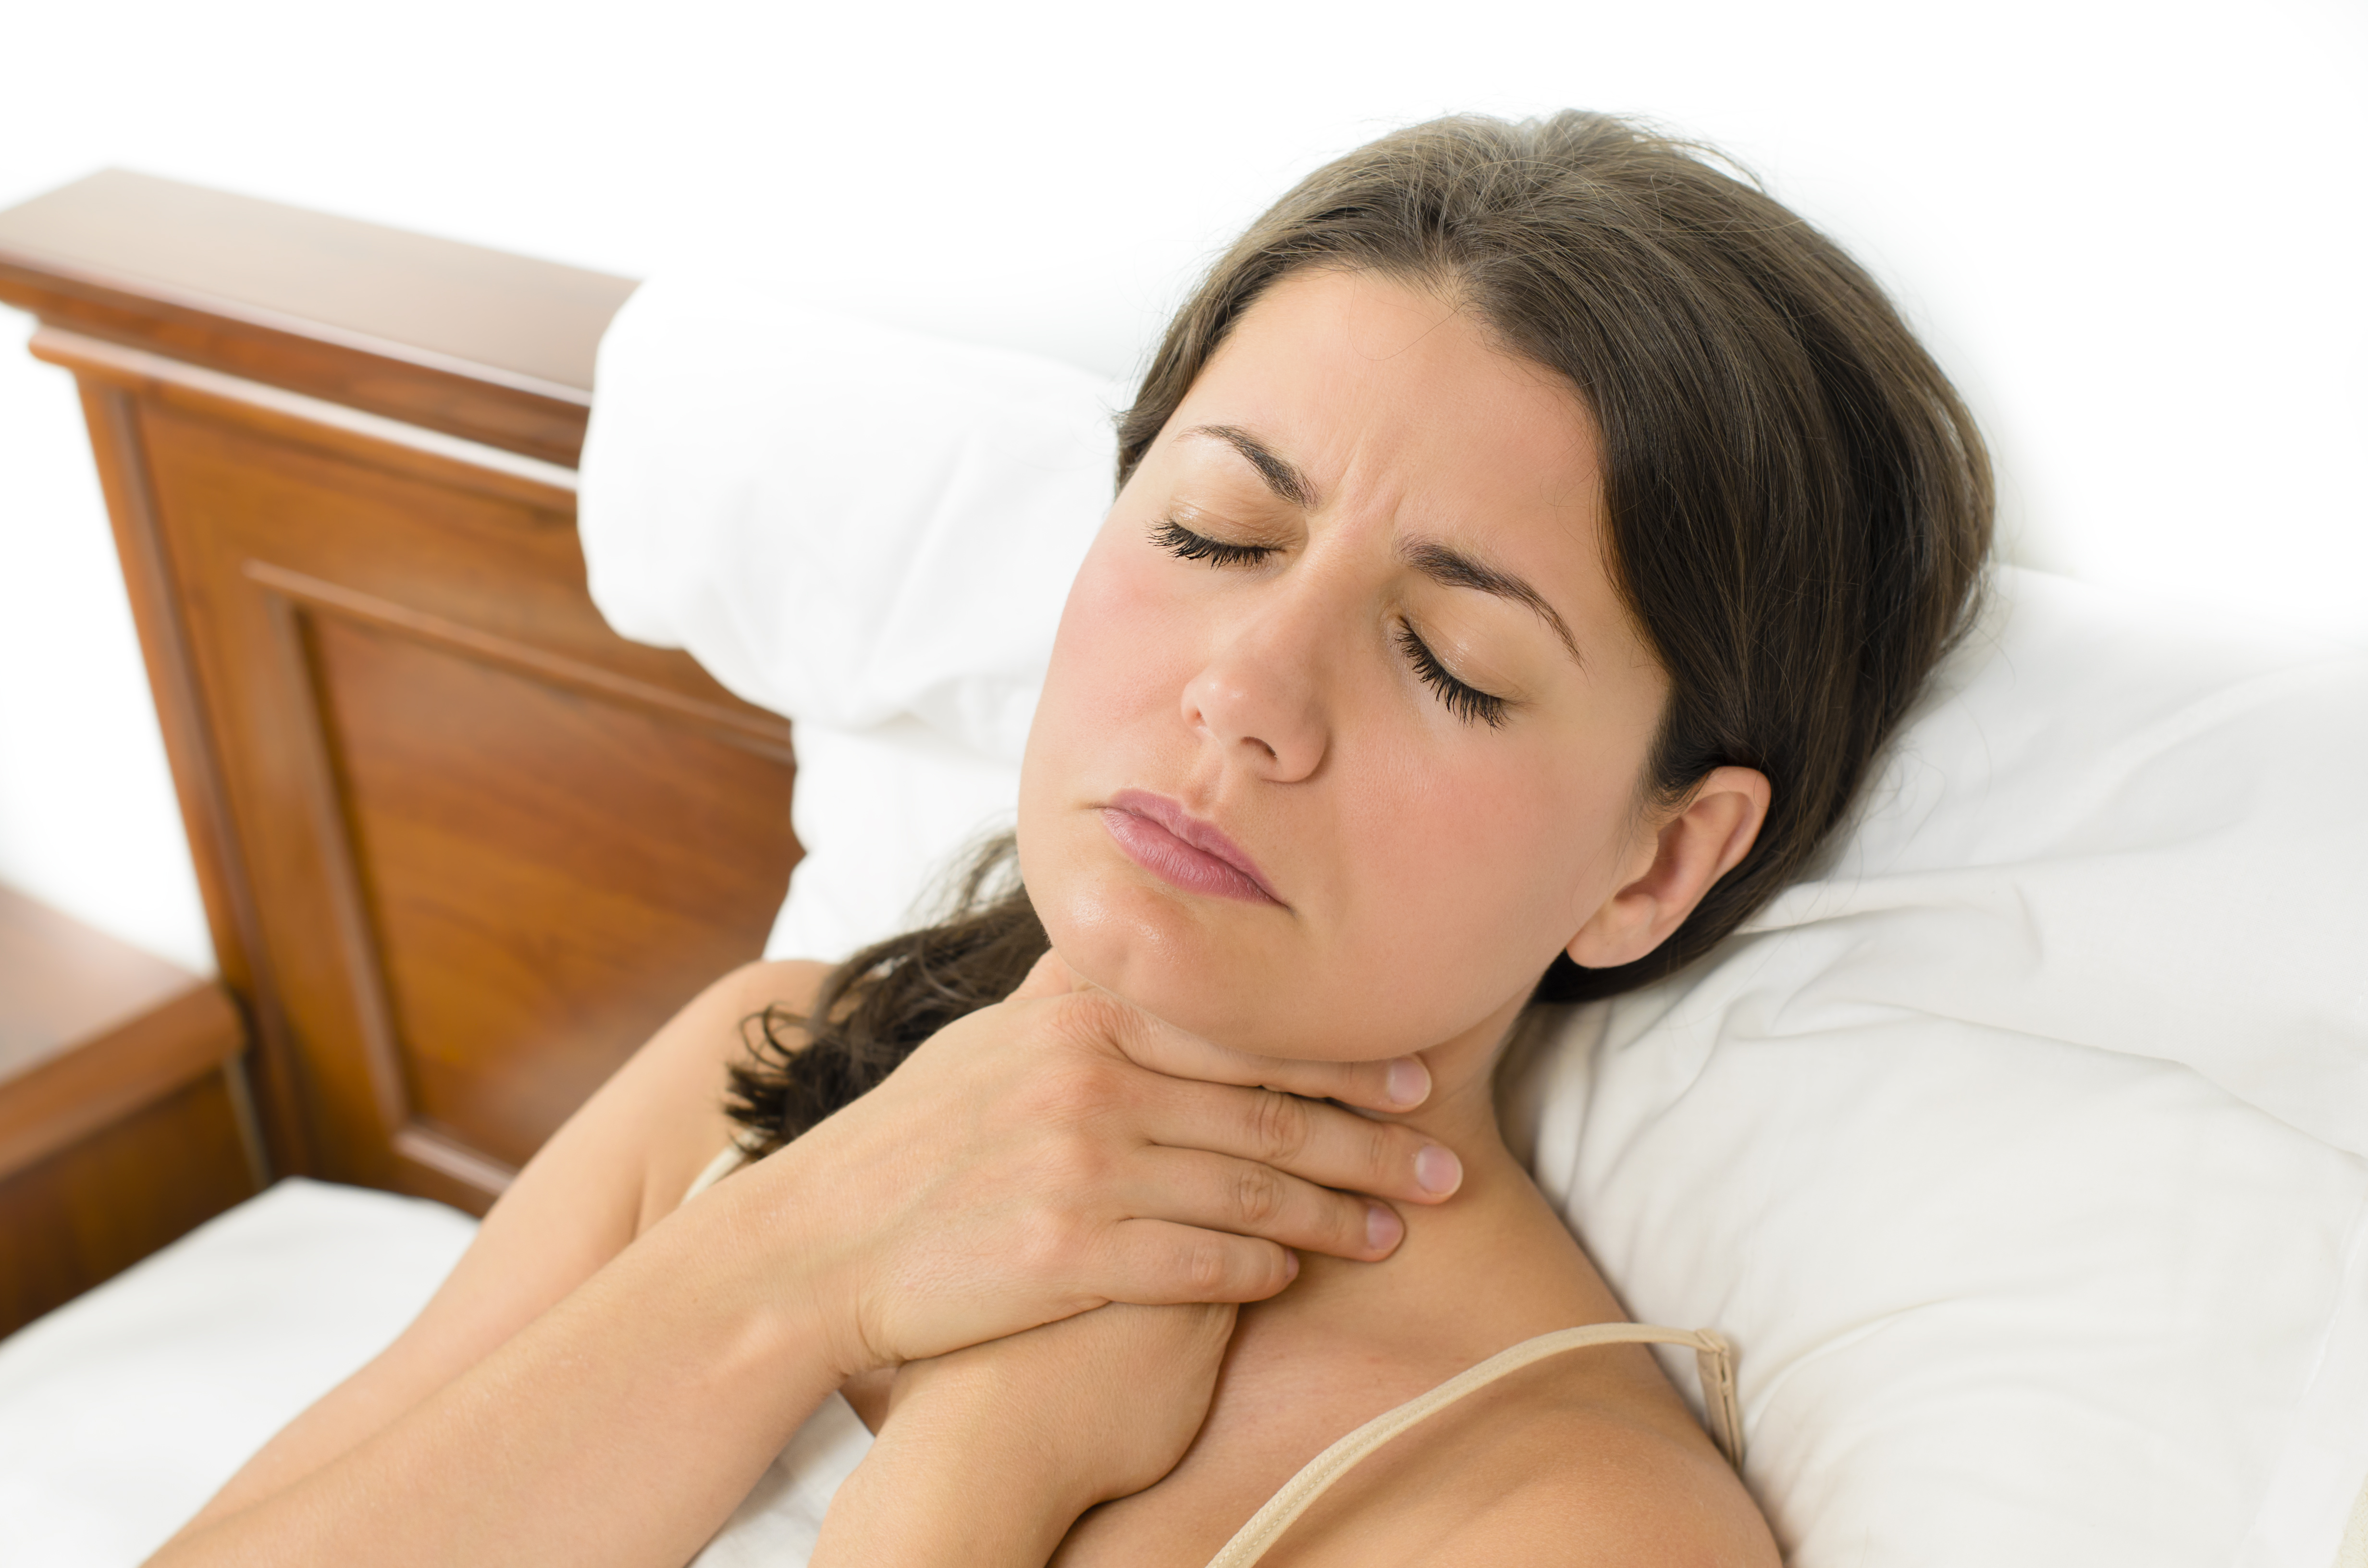 Hoarse Voice in Morning: Causes and Solutions